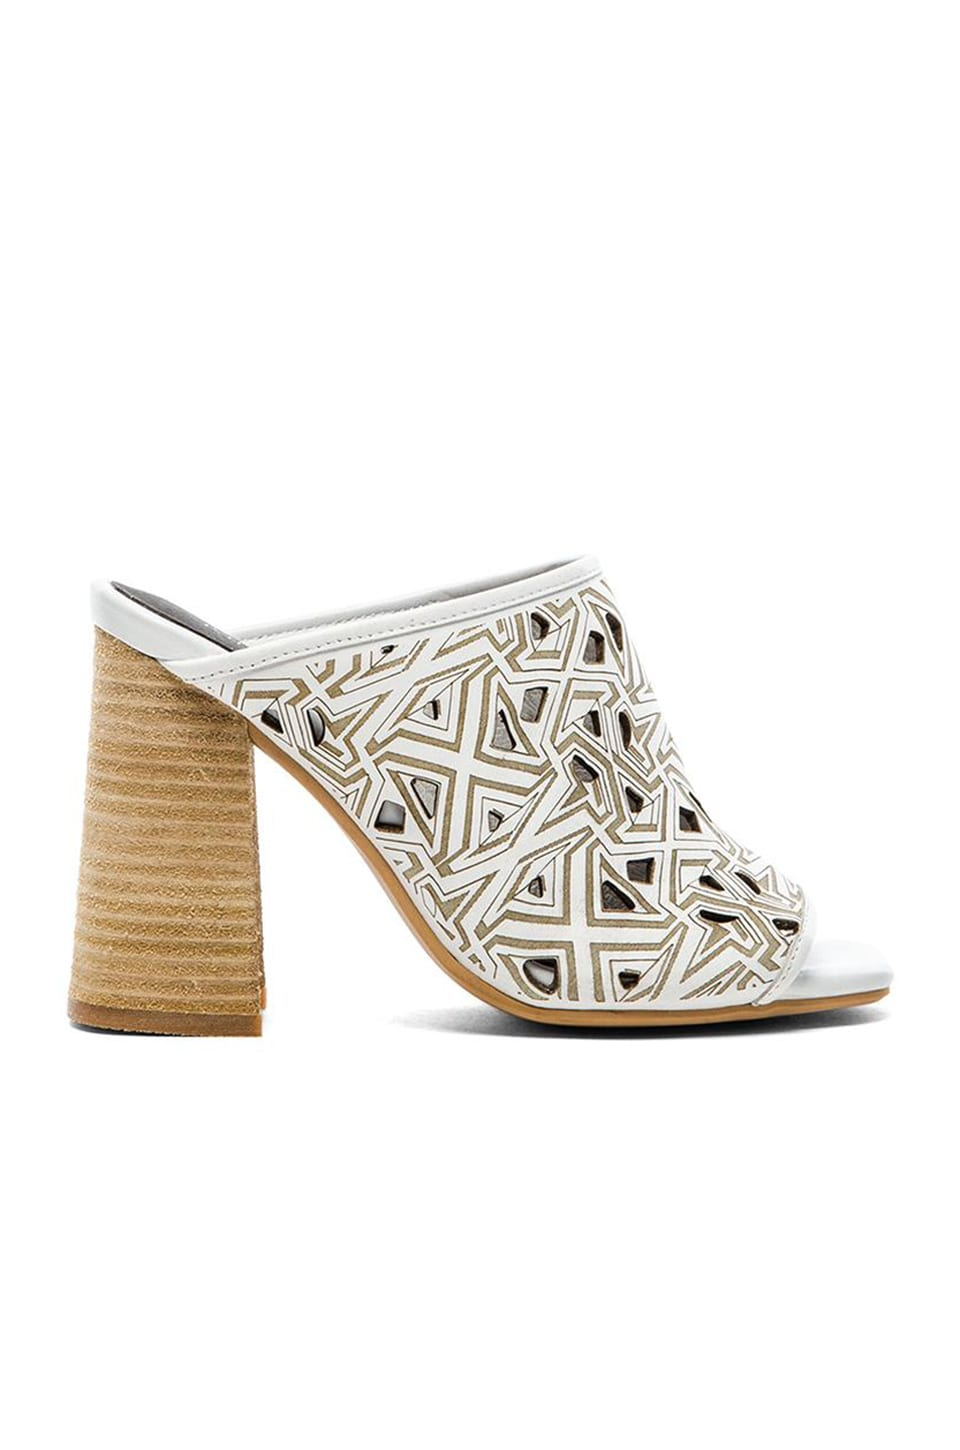 Jeffrey Campbell Druid Mule in White Paisley